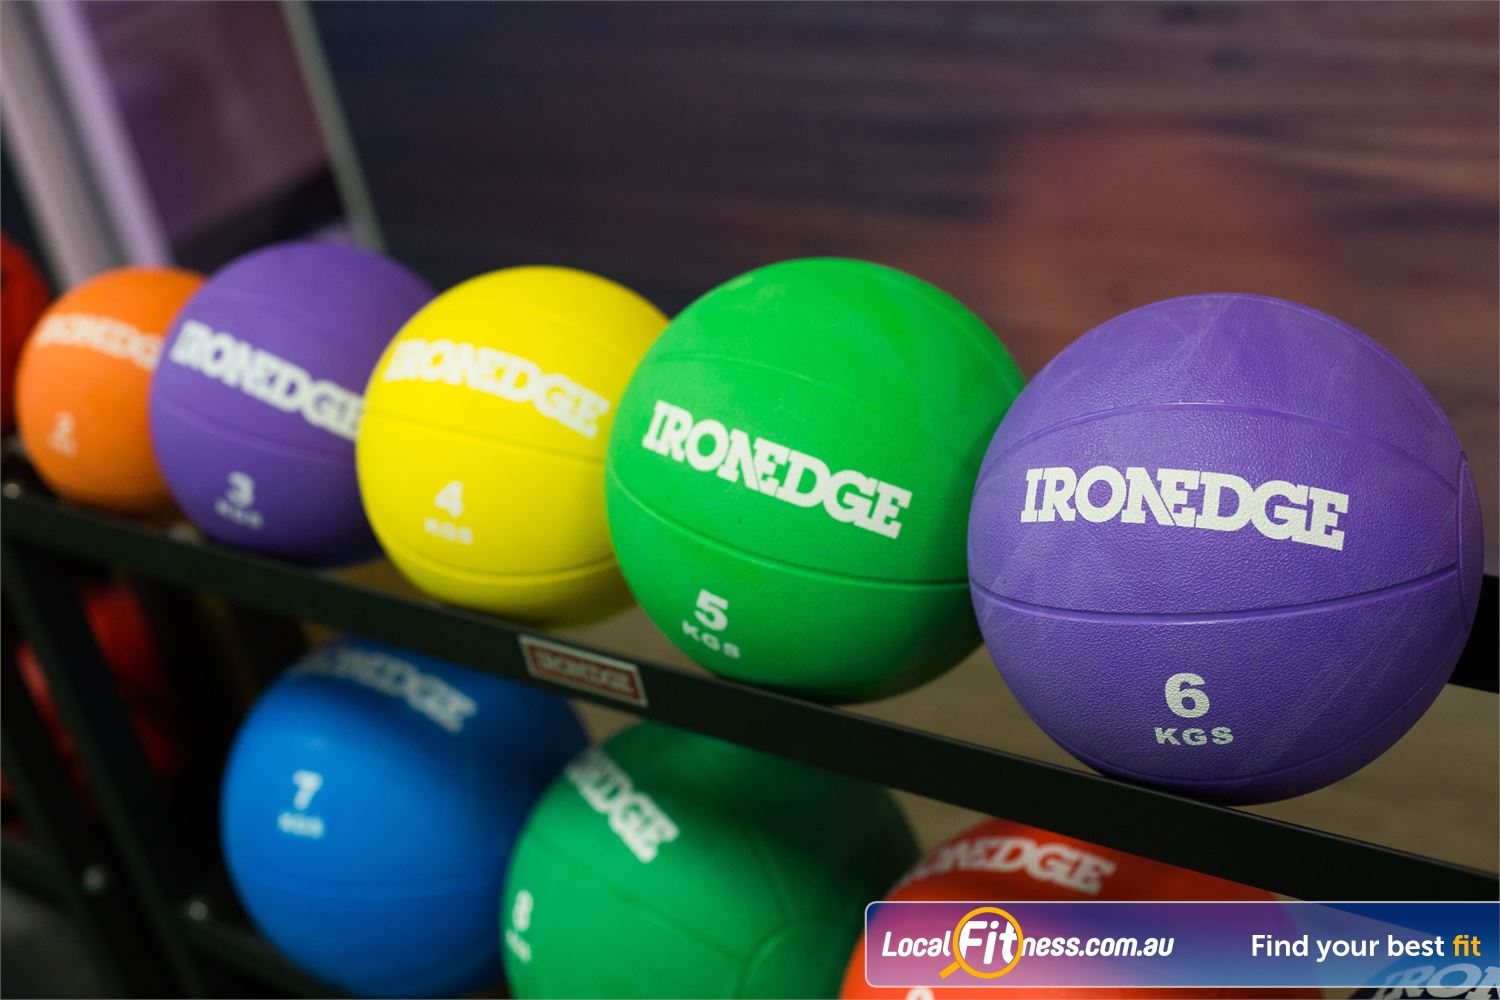 Fit n Fast Near Tempe Full range of functional training equipment in our St Peters HIIT gym.